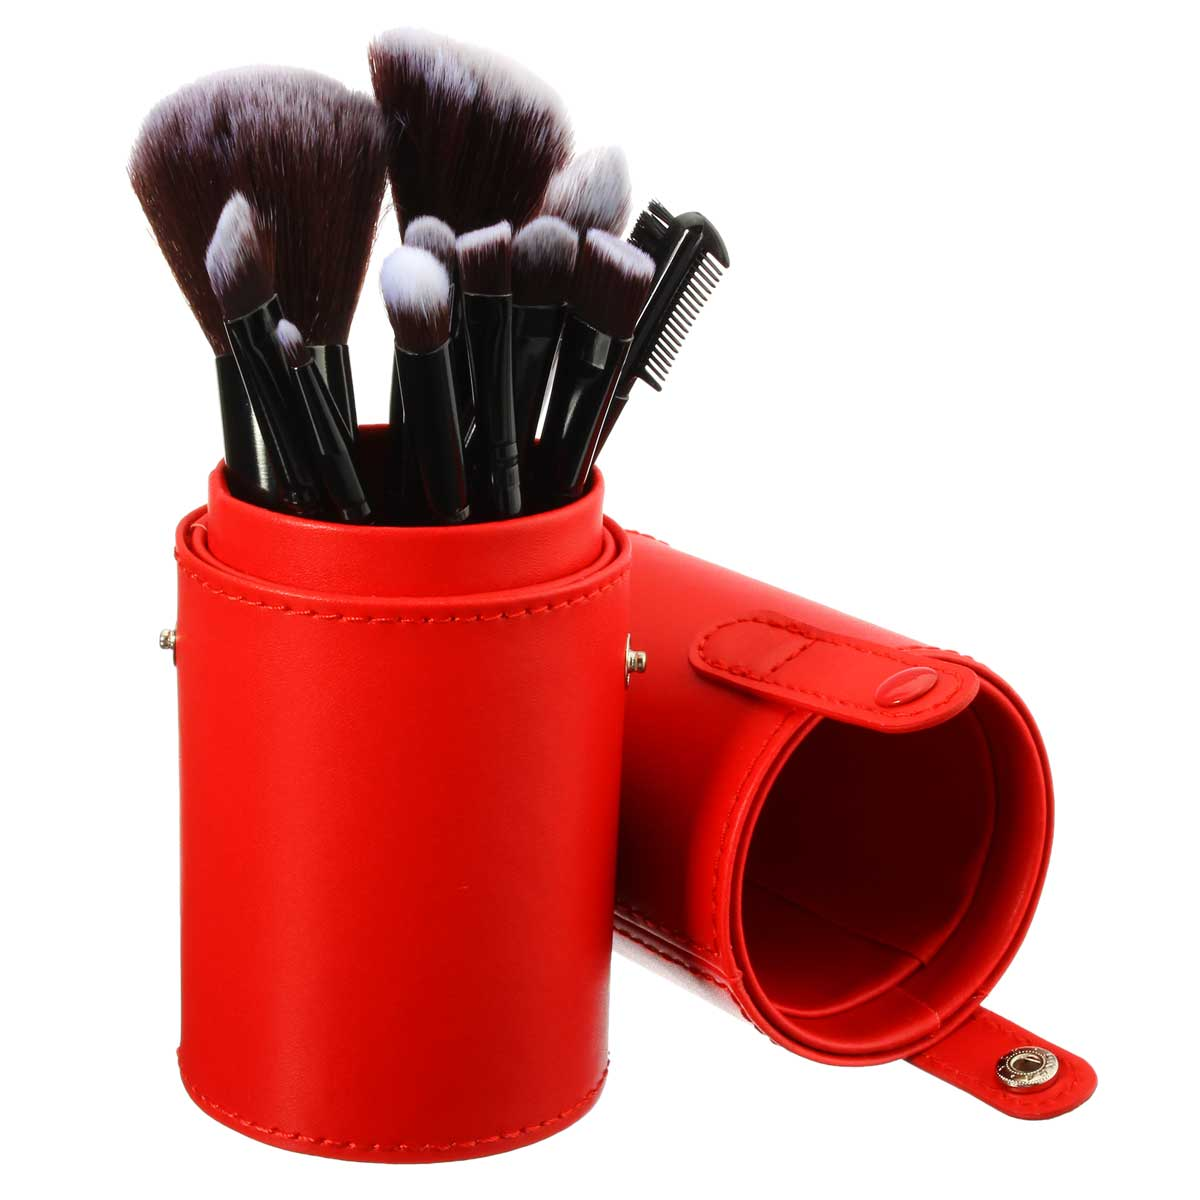 1pcs Empty Portable Round <font><b>Makeup</b></font> Brush Pen Holder Cosmetic Tool PU Leather <font><b>Cup</b></font> Container Pink <font><b>Red</b></font> Solid Colors 4 Optional Case